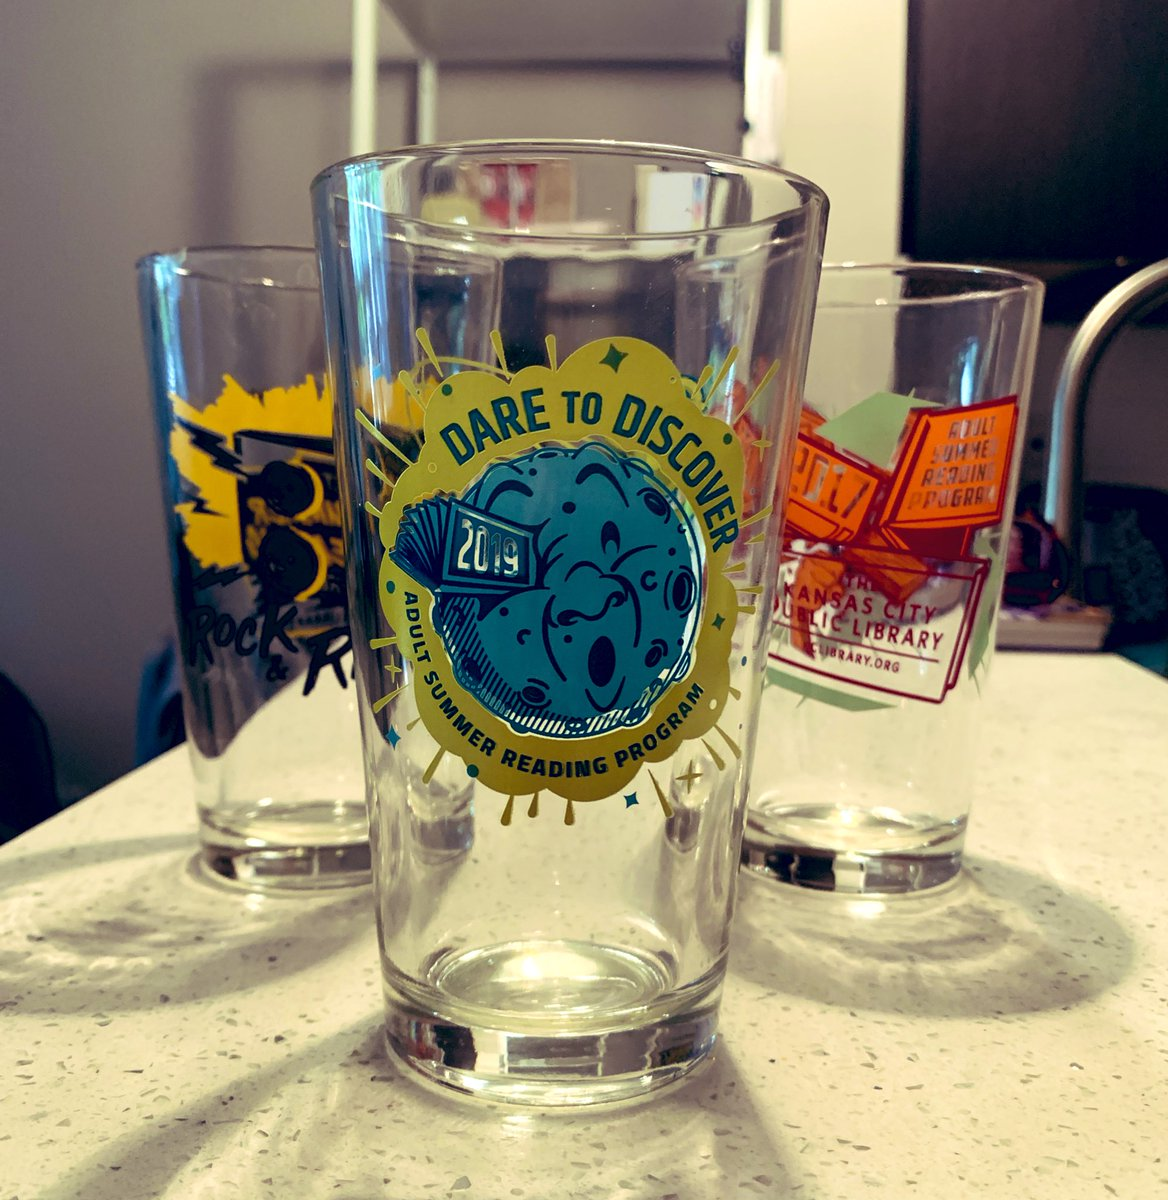 Added this year's pint glass to the collection! Thank you @KCLibrary for the awesome Summer Readung Program! I look forward to it every summer. #kcsummerreads <br>http://pic.twitter.com/KvGq6VihzV